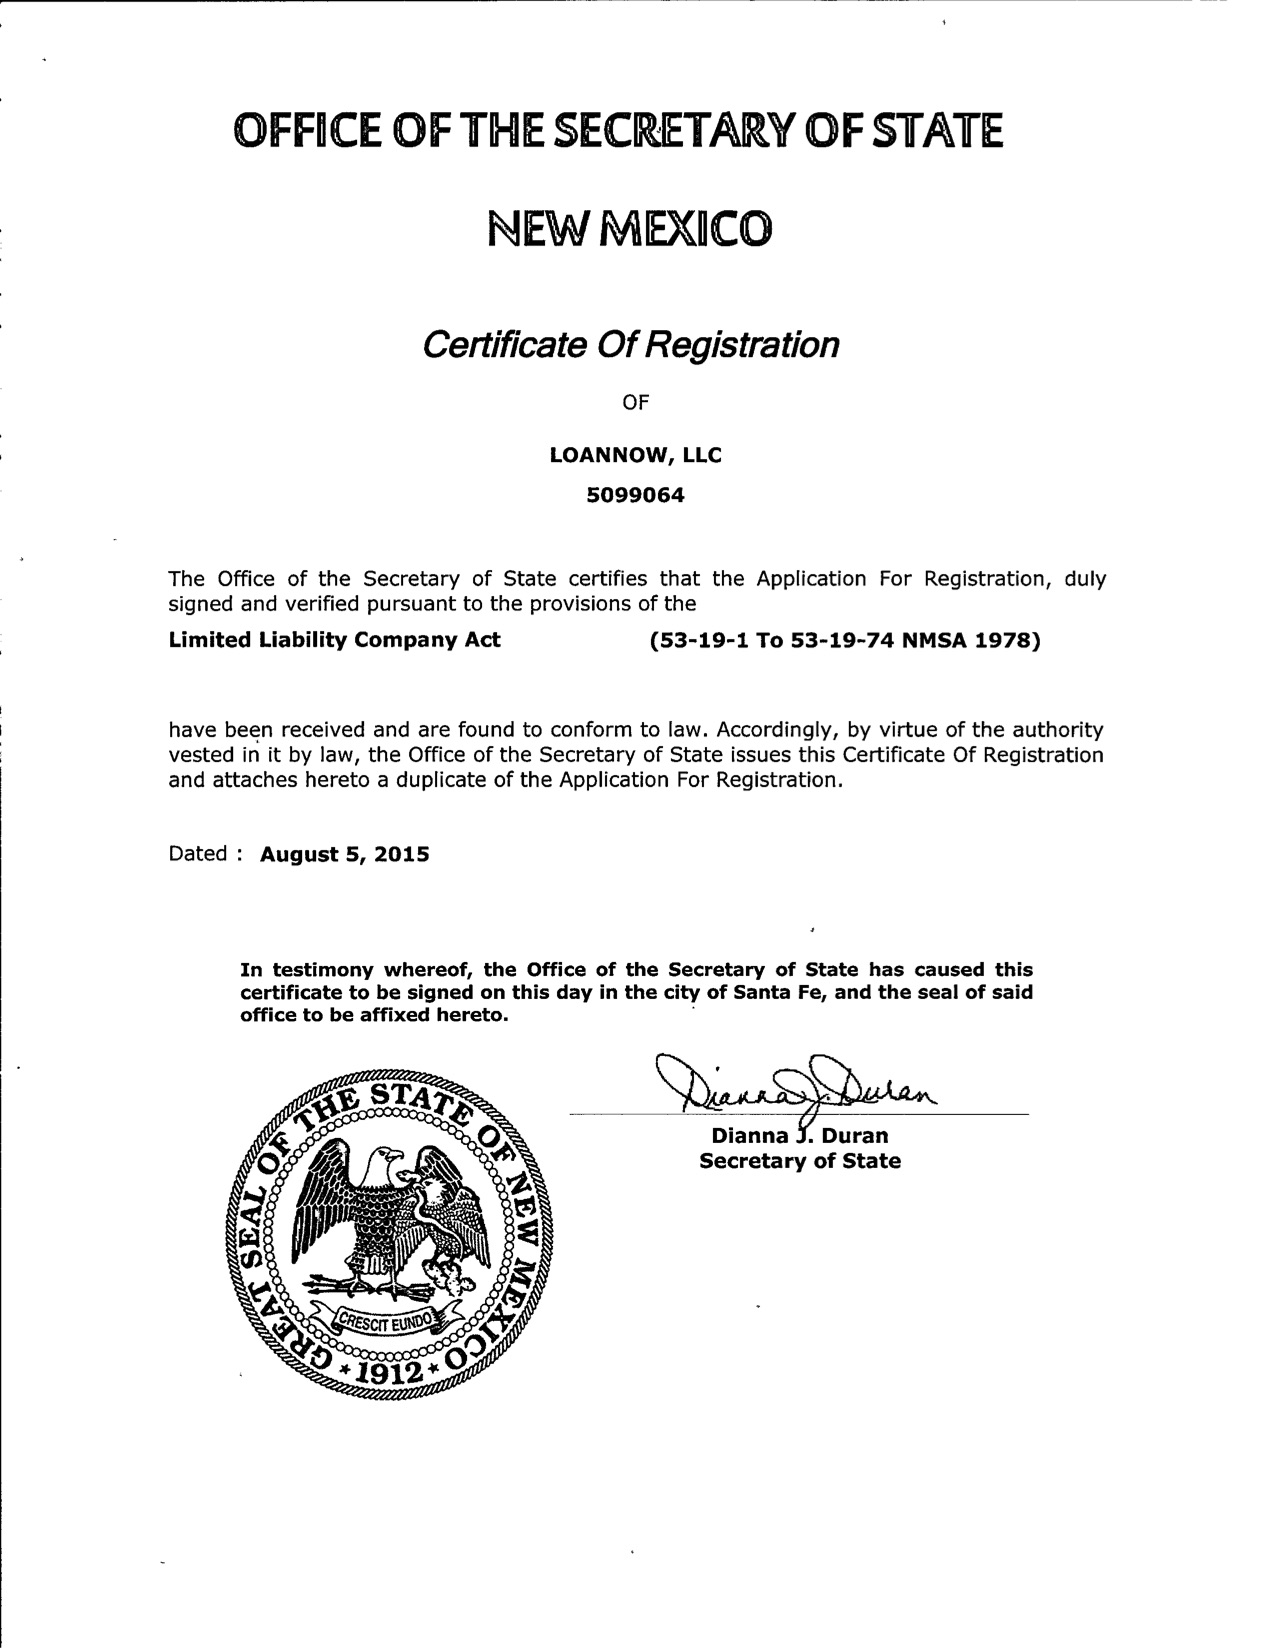 NM Certificate of Registration